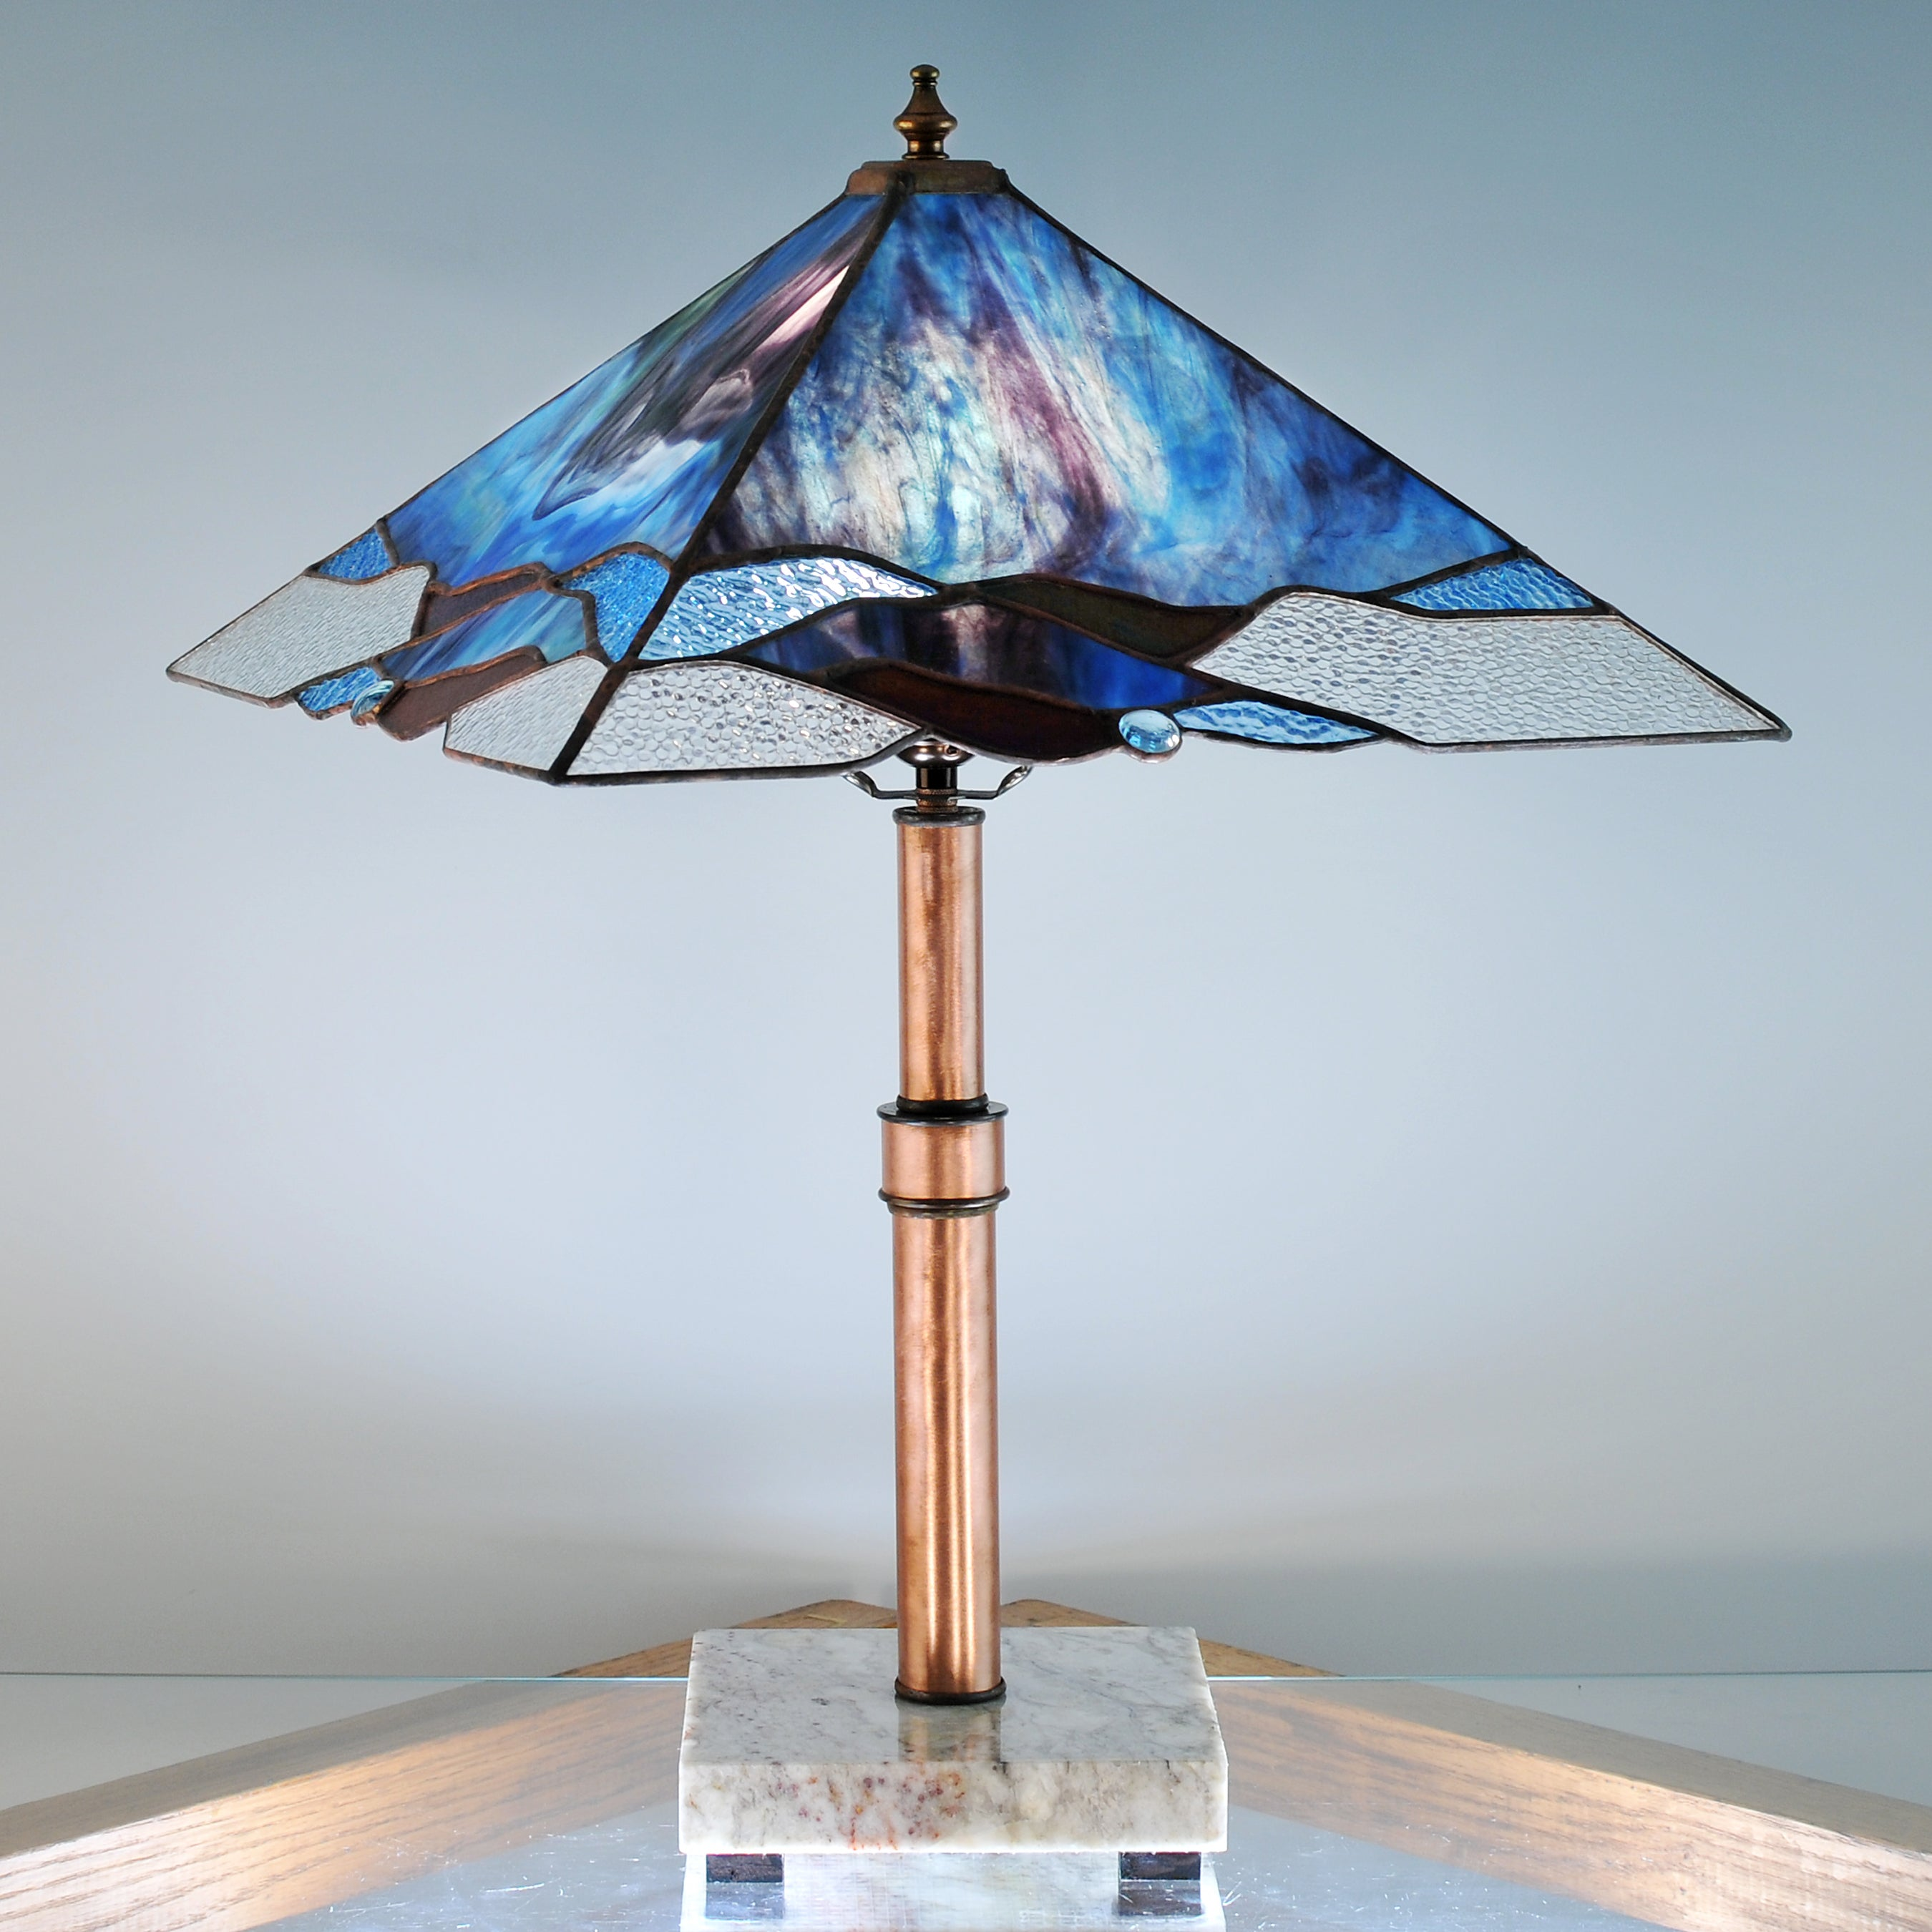 Large stained glass lamp with blue, purple, green and clear swirls made by Vermont artist Julia Brandis. Organic abstract.